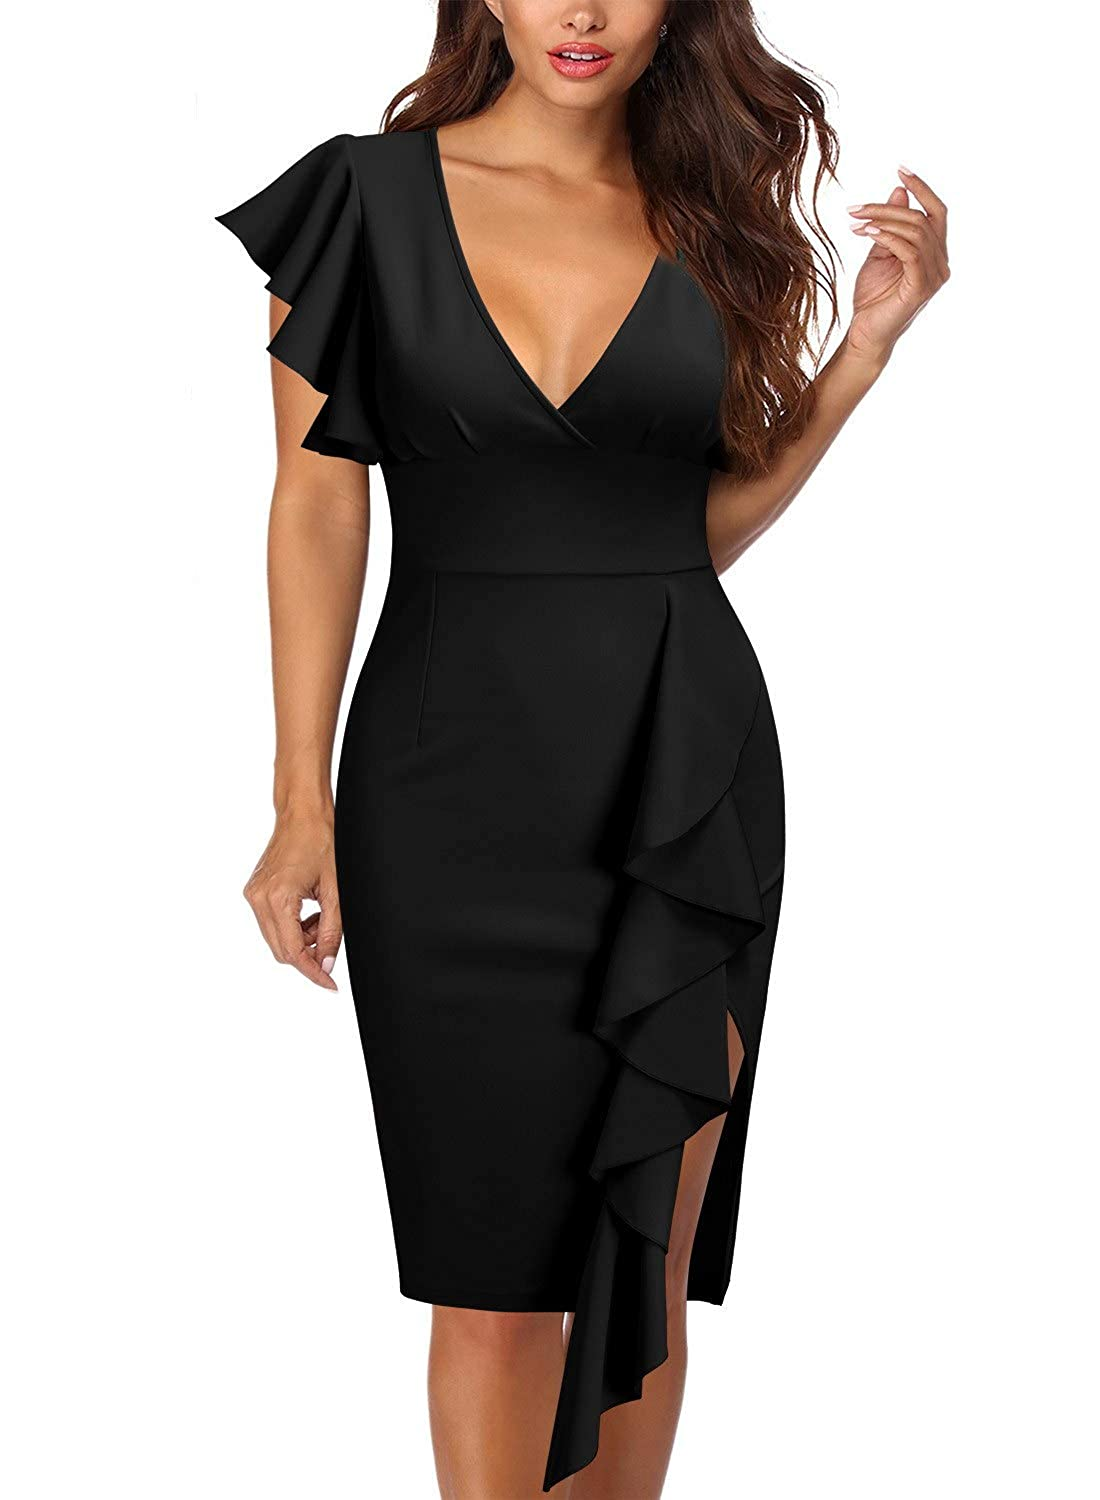 eefdb11b9ad Knitee Women's Deep-V Neck Ruffle Sleeves Cocktail Party Pencil Slit Dress  at Amazon Women's Clothing store: